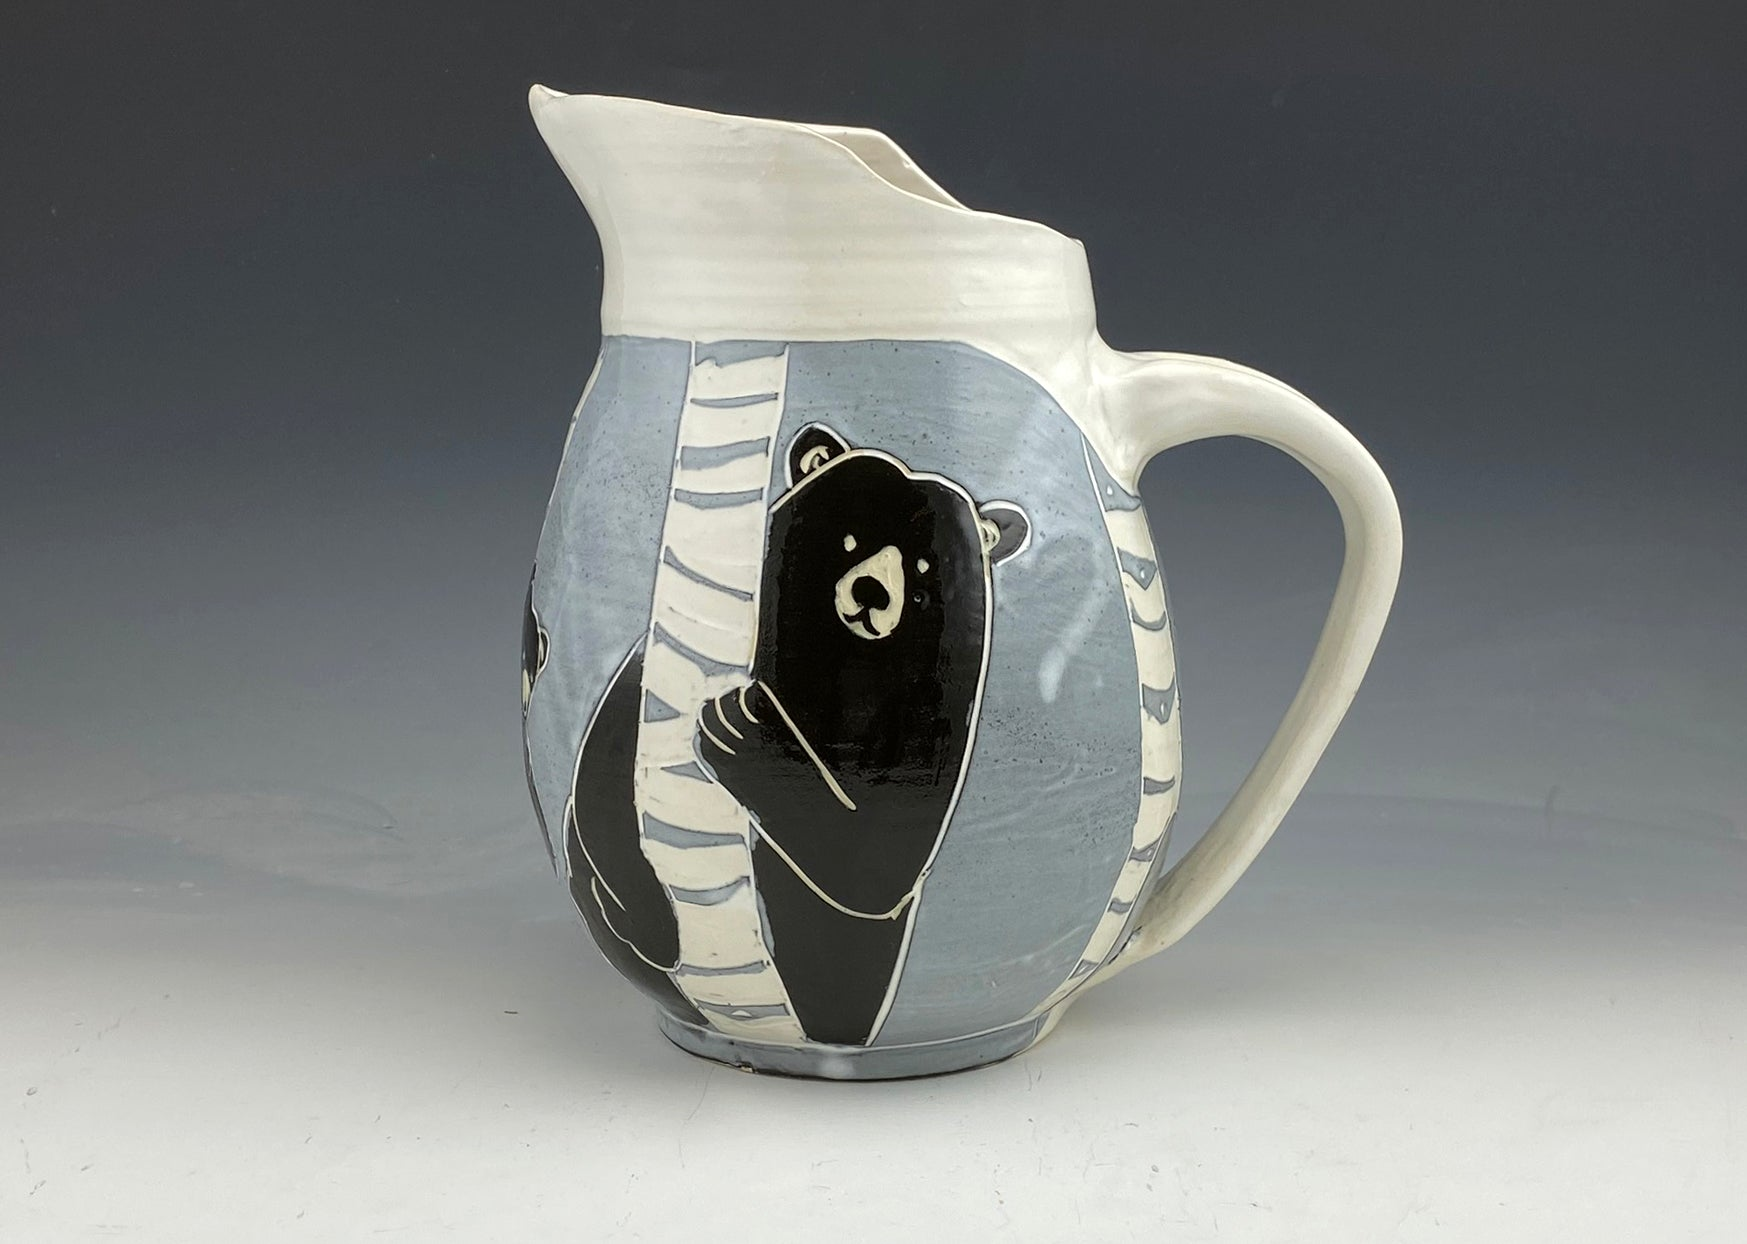 Large Sgraffito Black Bear Ceramic Pitcher in Black and White